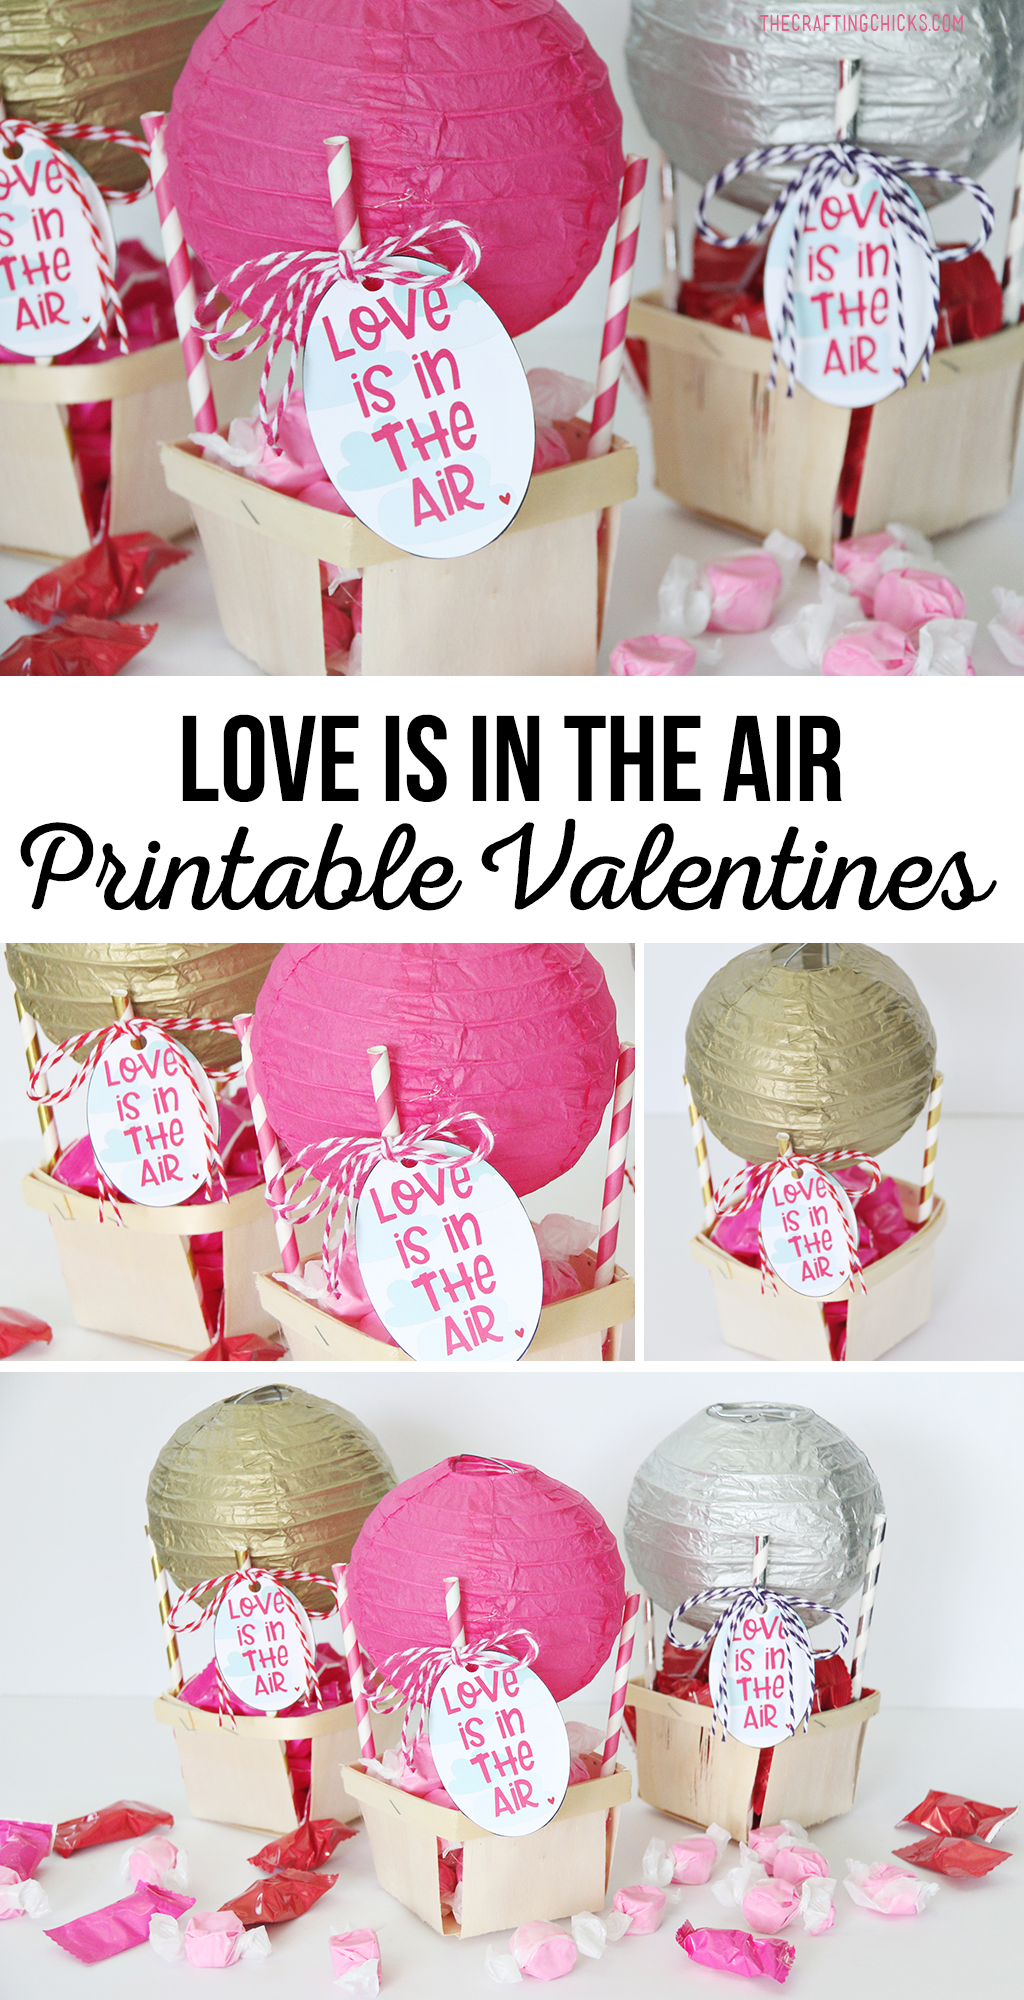 We\'re Mint to Be Printable Valentines - The Crafting Chicks